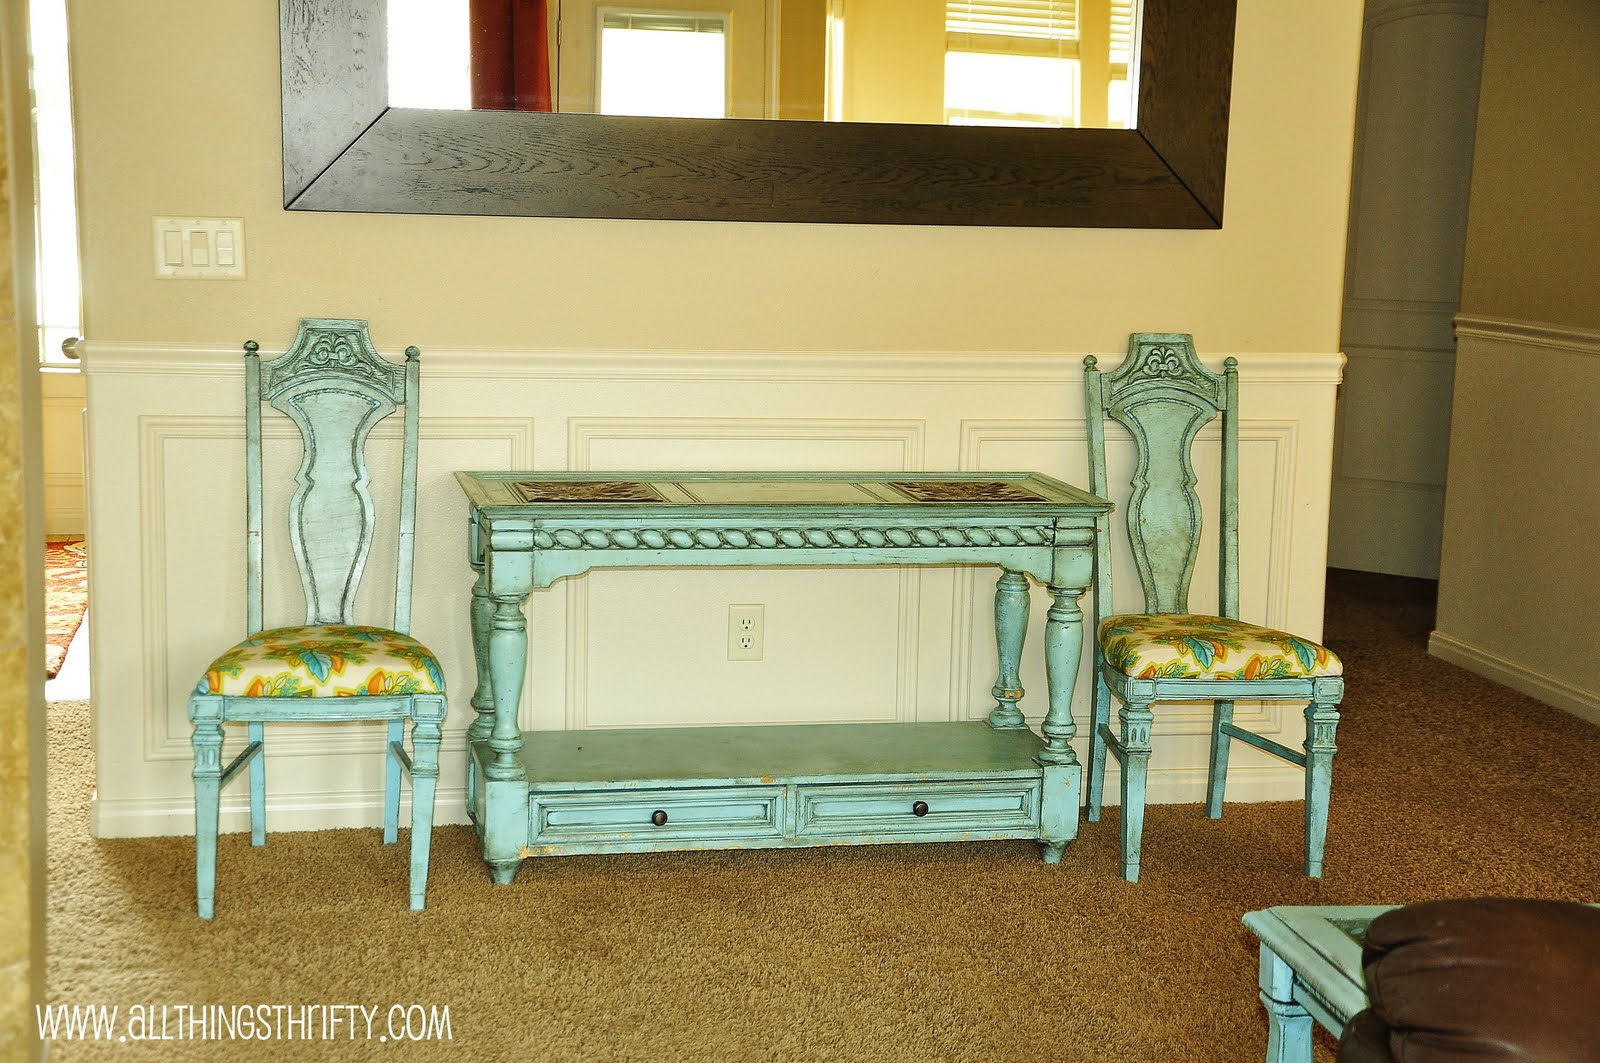 Refinishing Old Furniture Home Design Ideas And Pictures